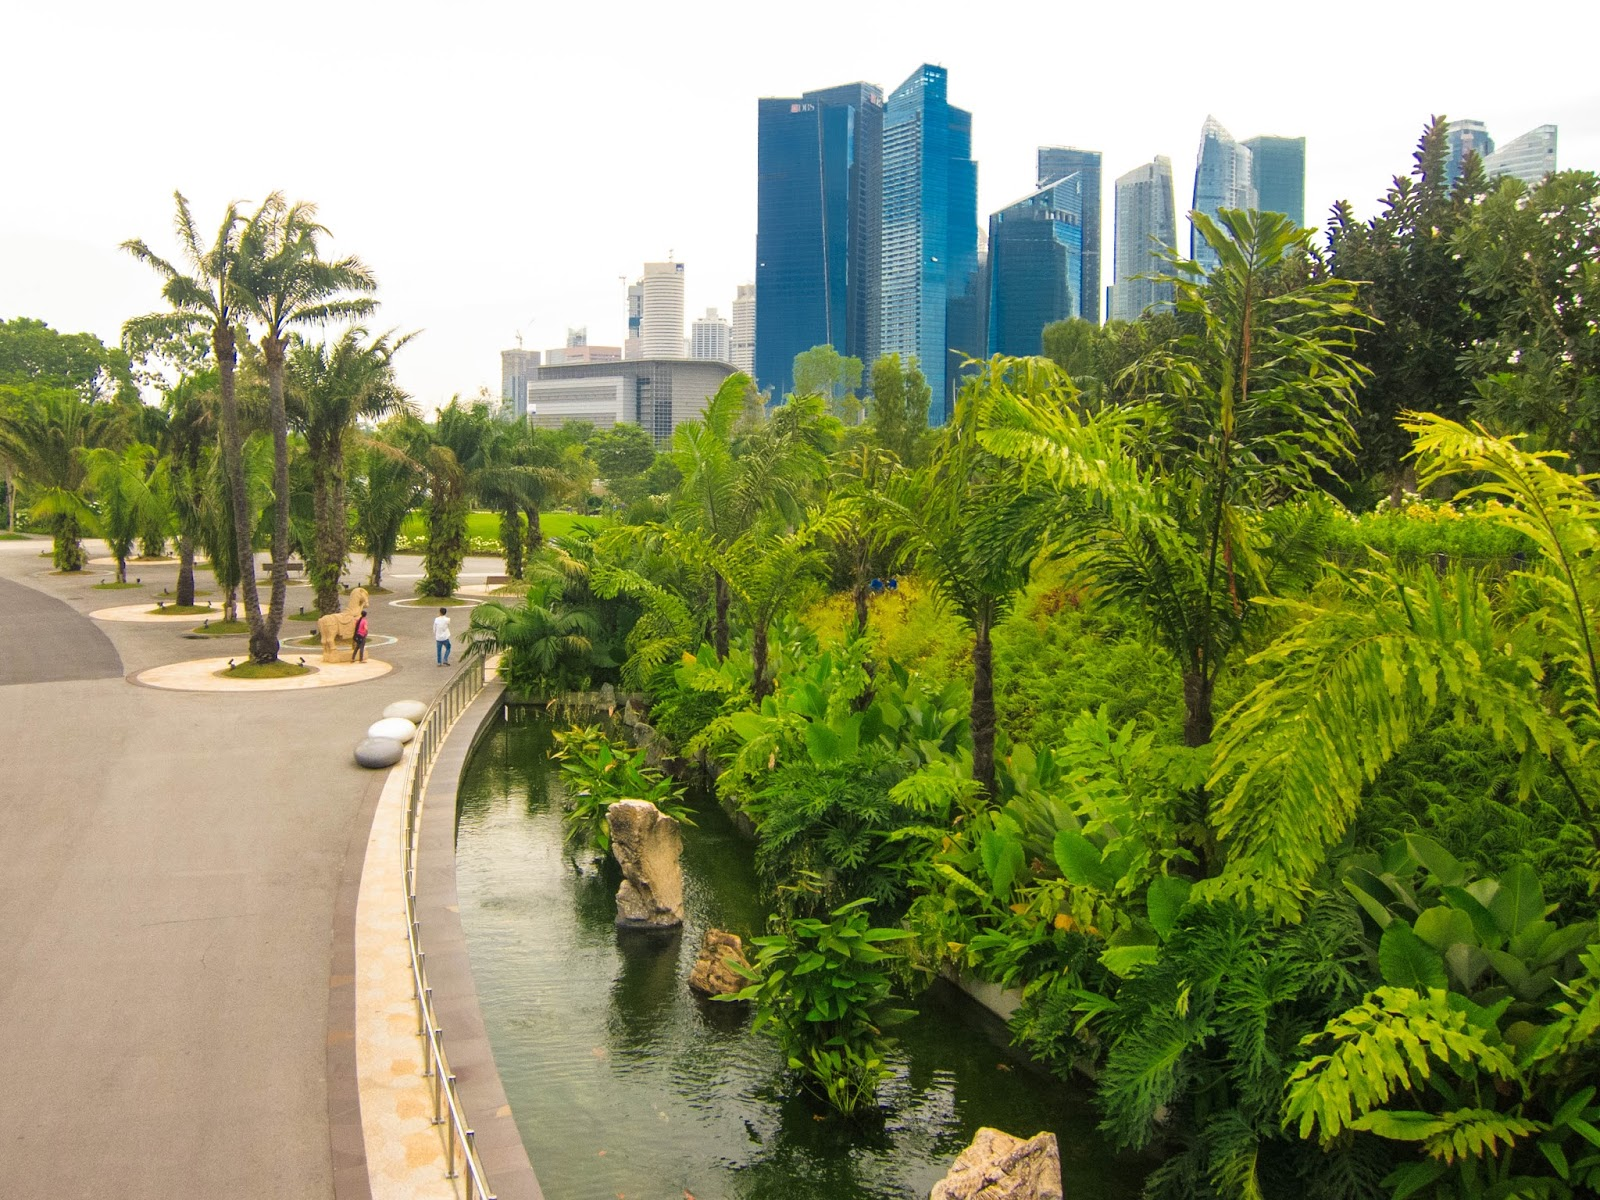 Singapore: A city in a garden | Svelte Salivations - Travel